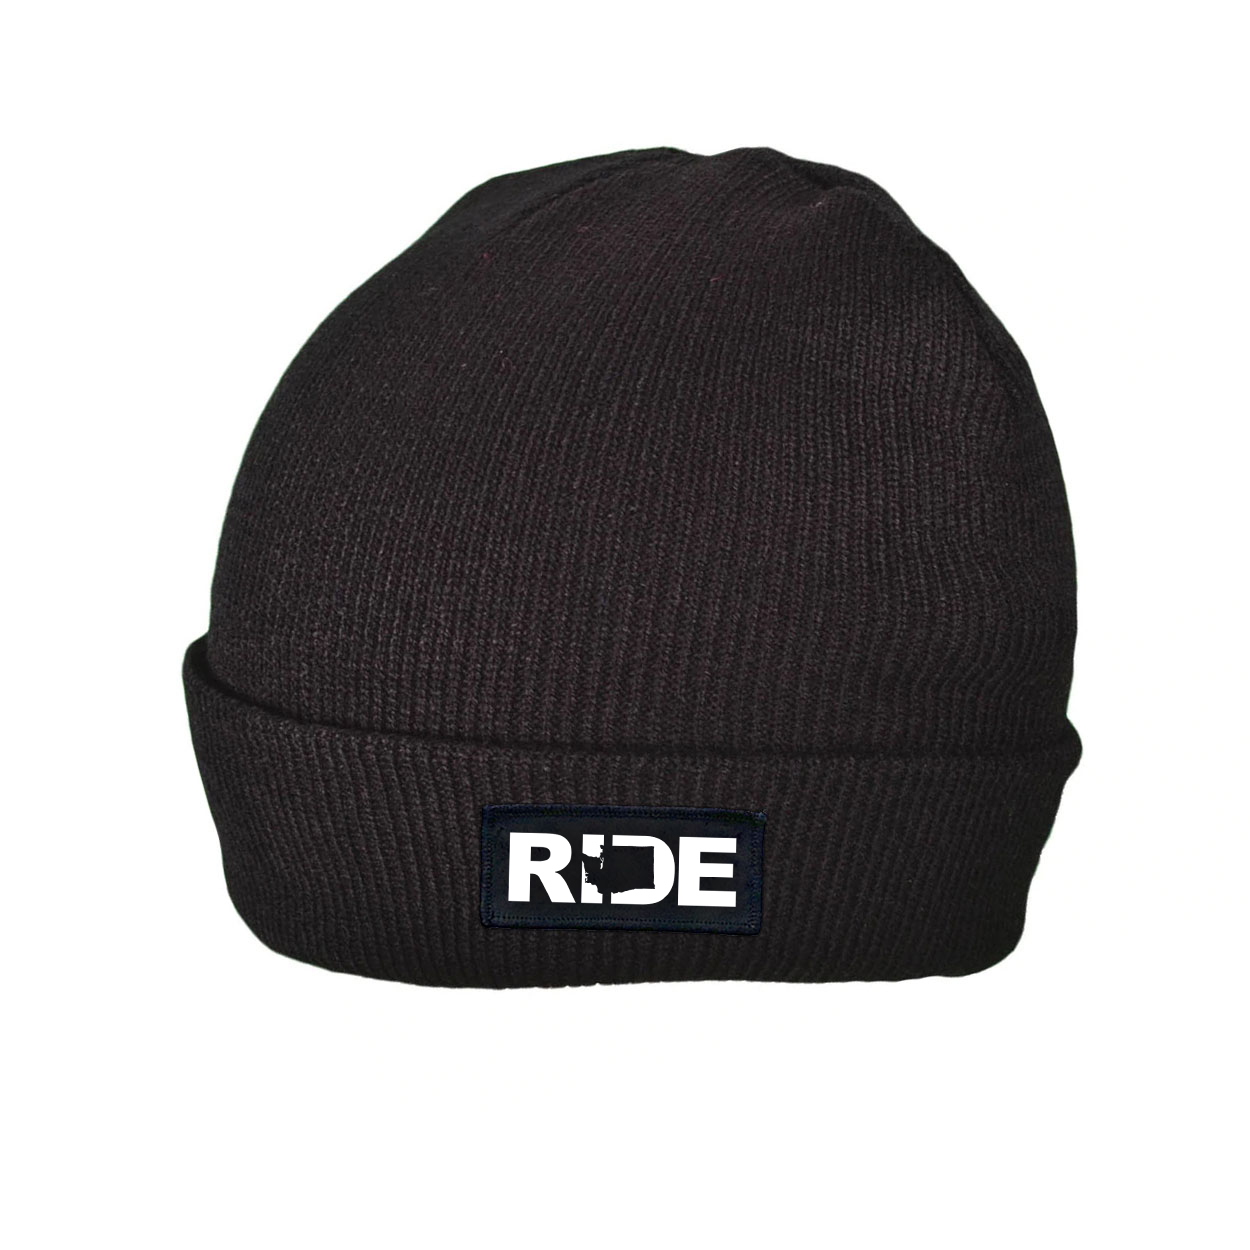 Ride Washington Night Out Woven Patch Roll Up Skully Beanie Black (White Logo)